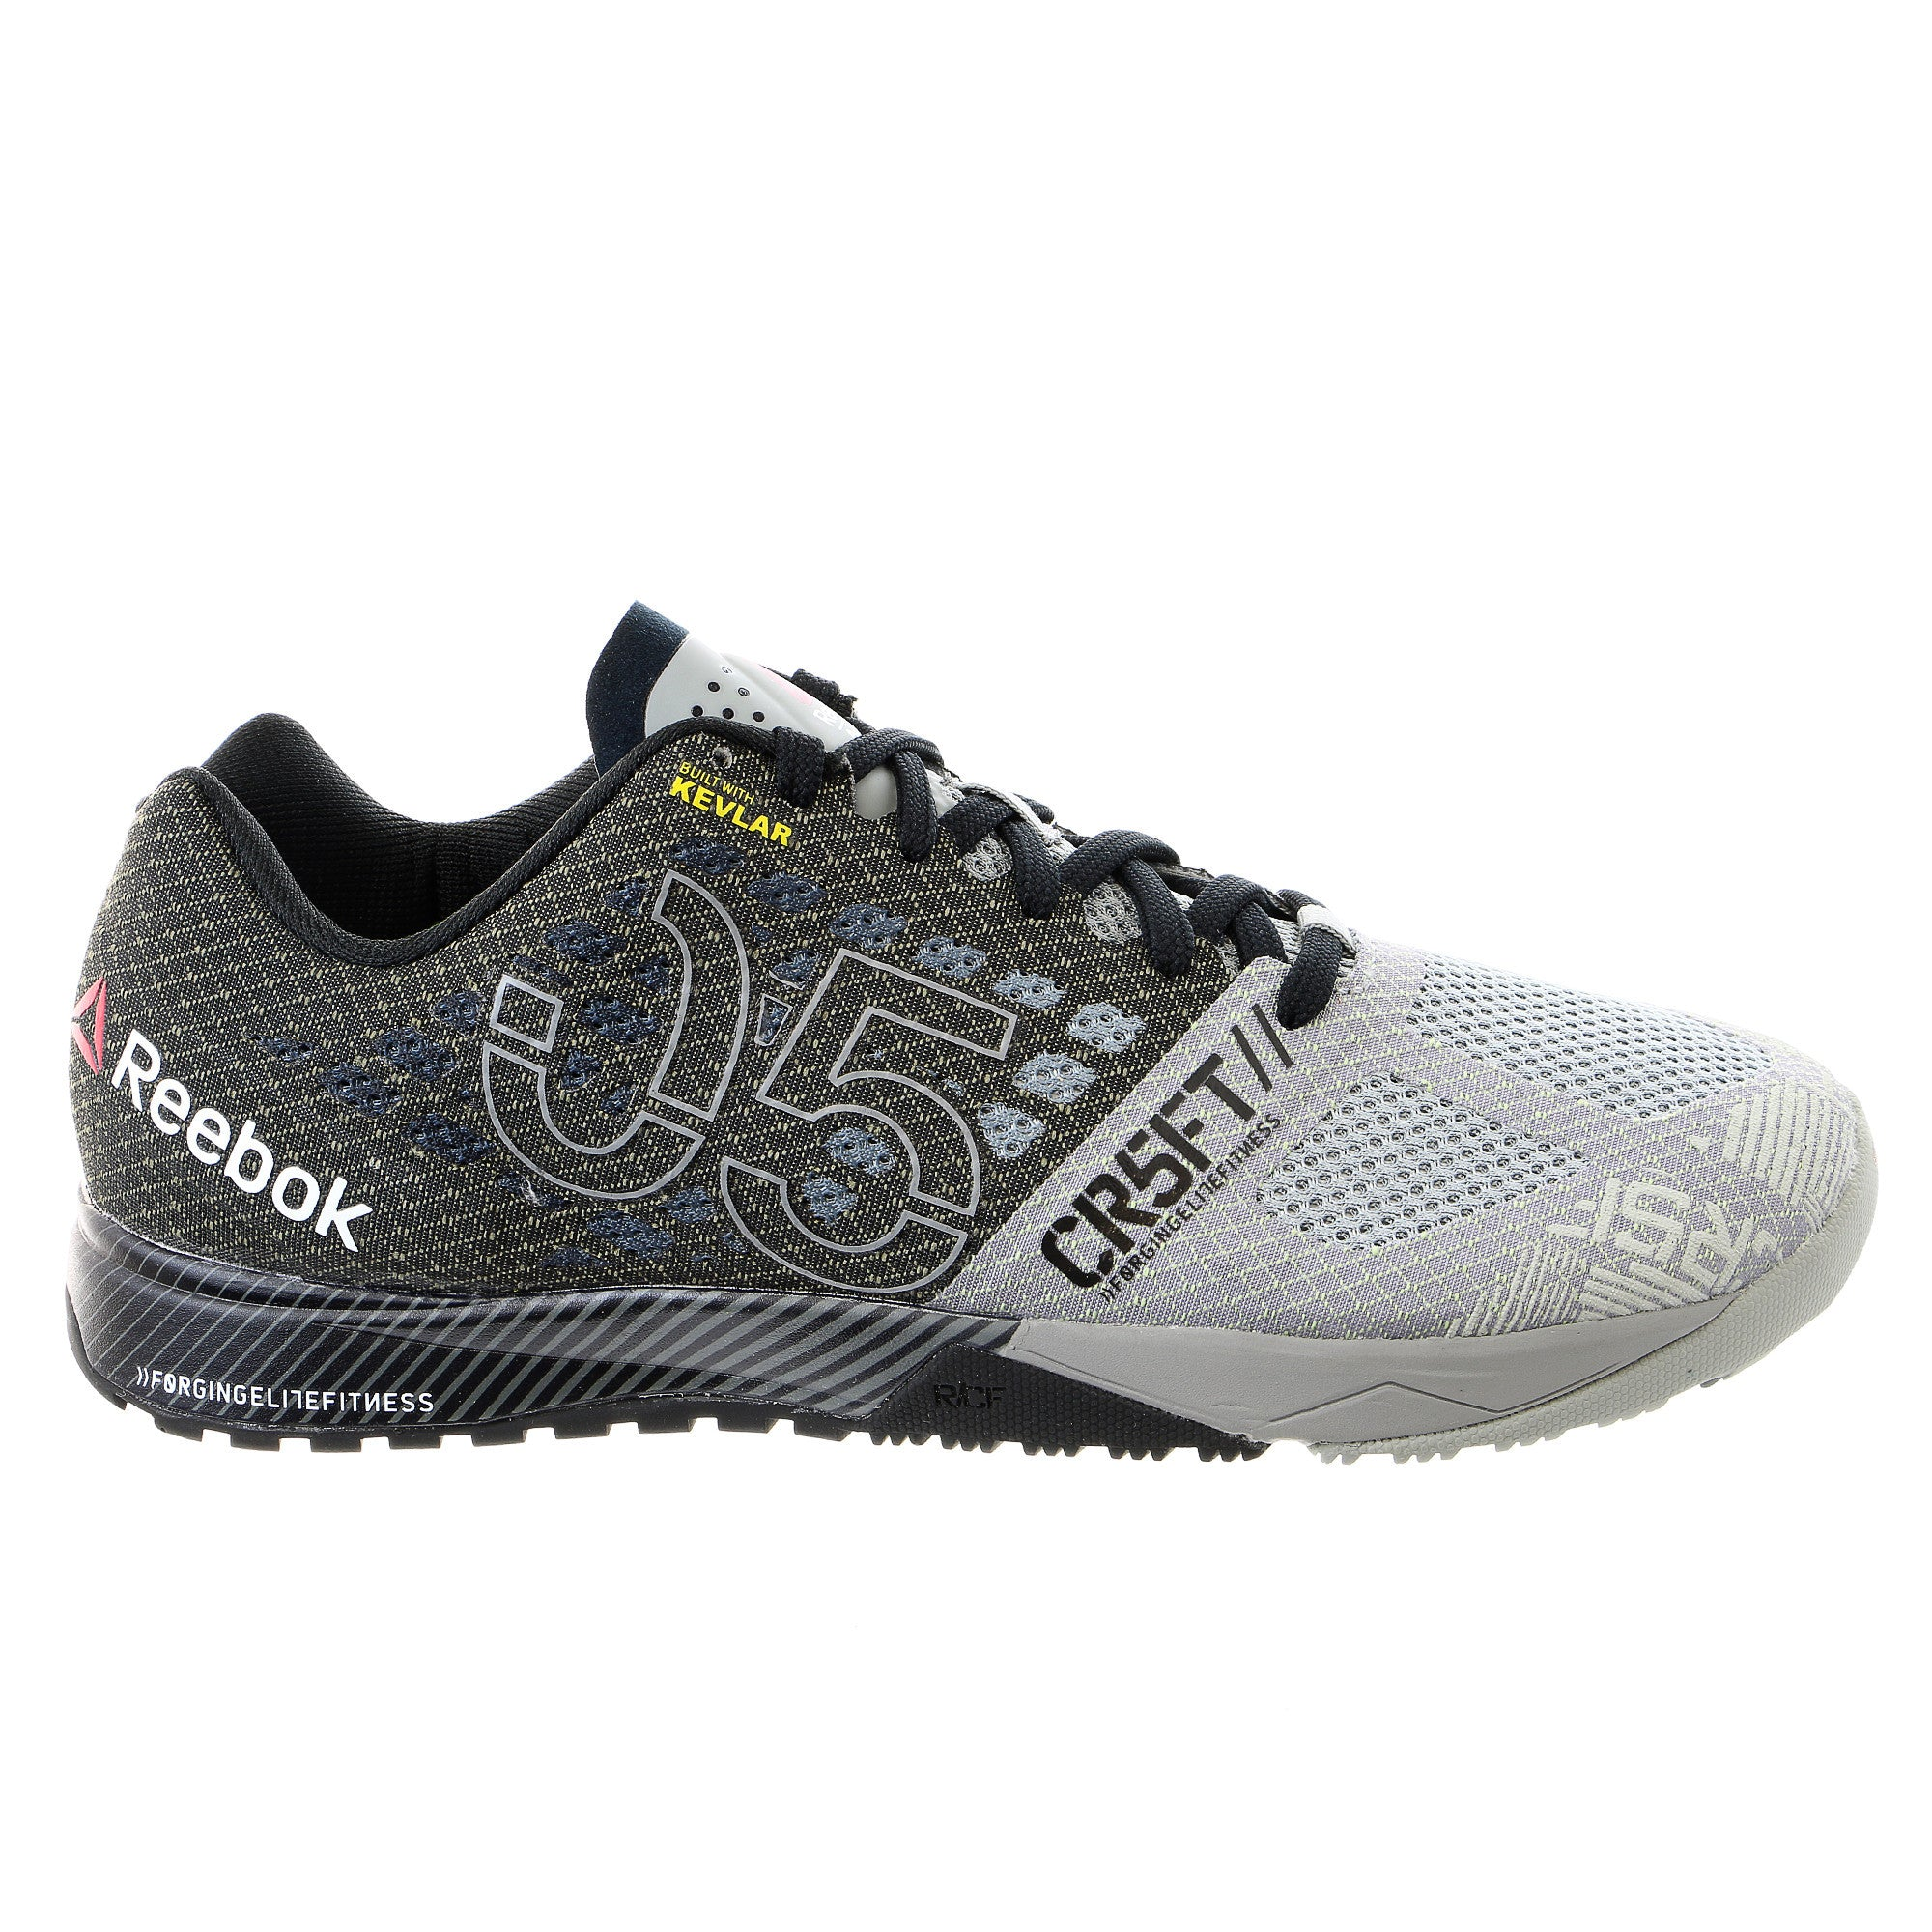 0d9749a92b7 Reebok R Crossfit Nano 5.0 Training Sneaker Shoe - Mens - Shoplifestyle